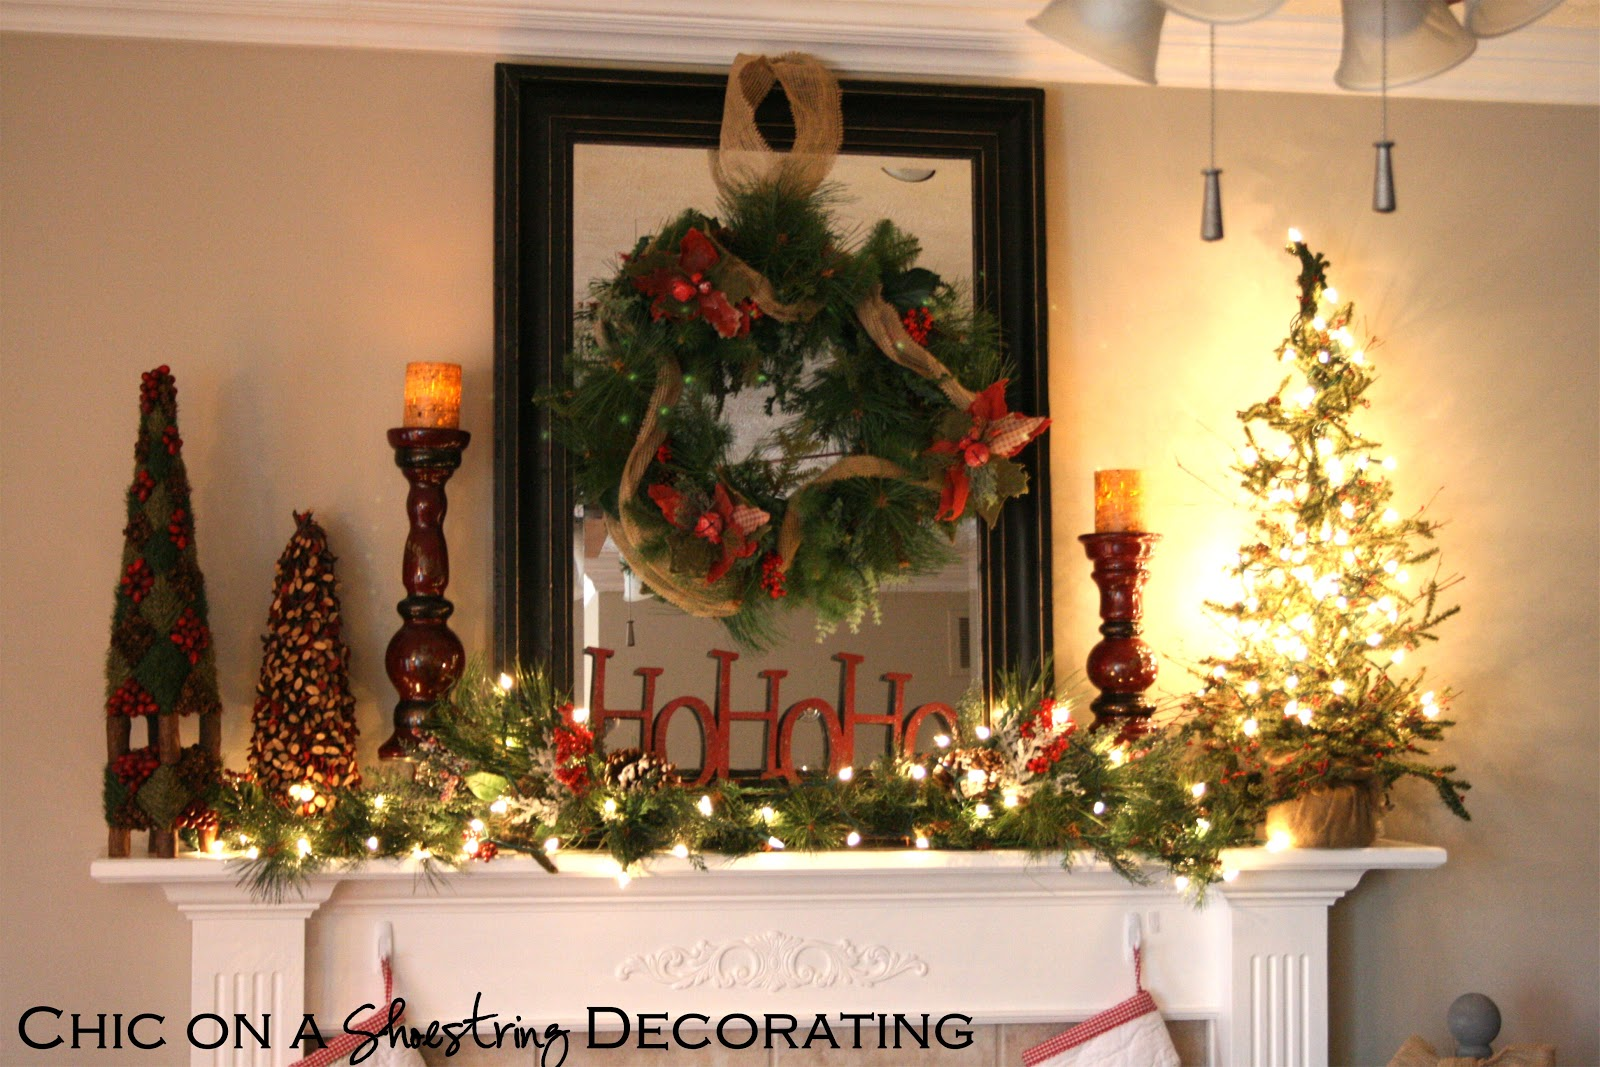 Chic on a shoestring decorating rustic christmas mantel for Christmas home ideas